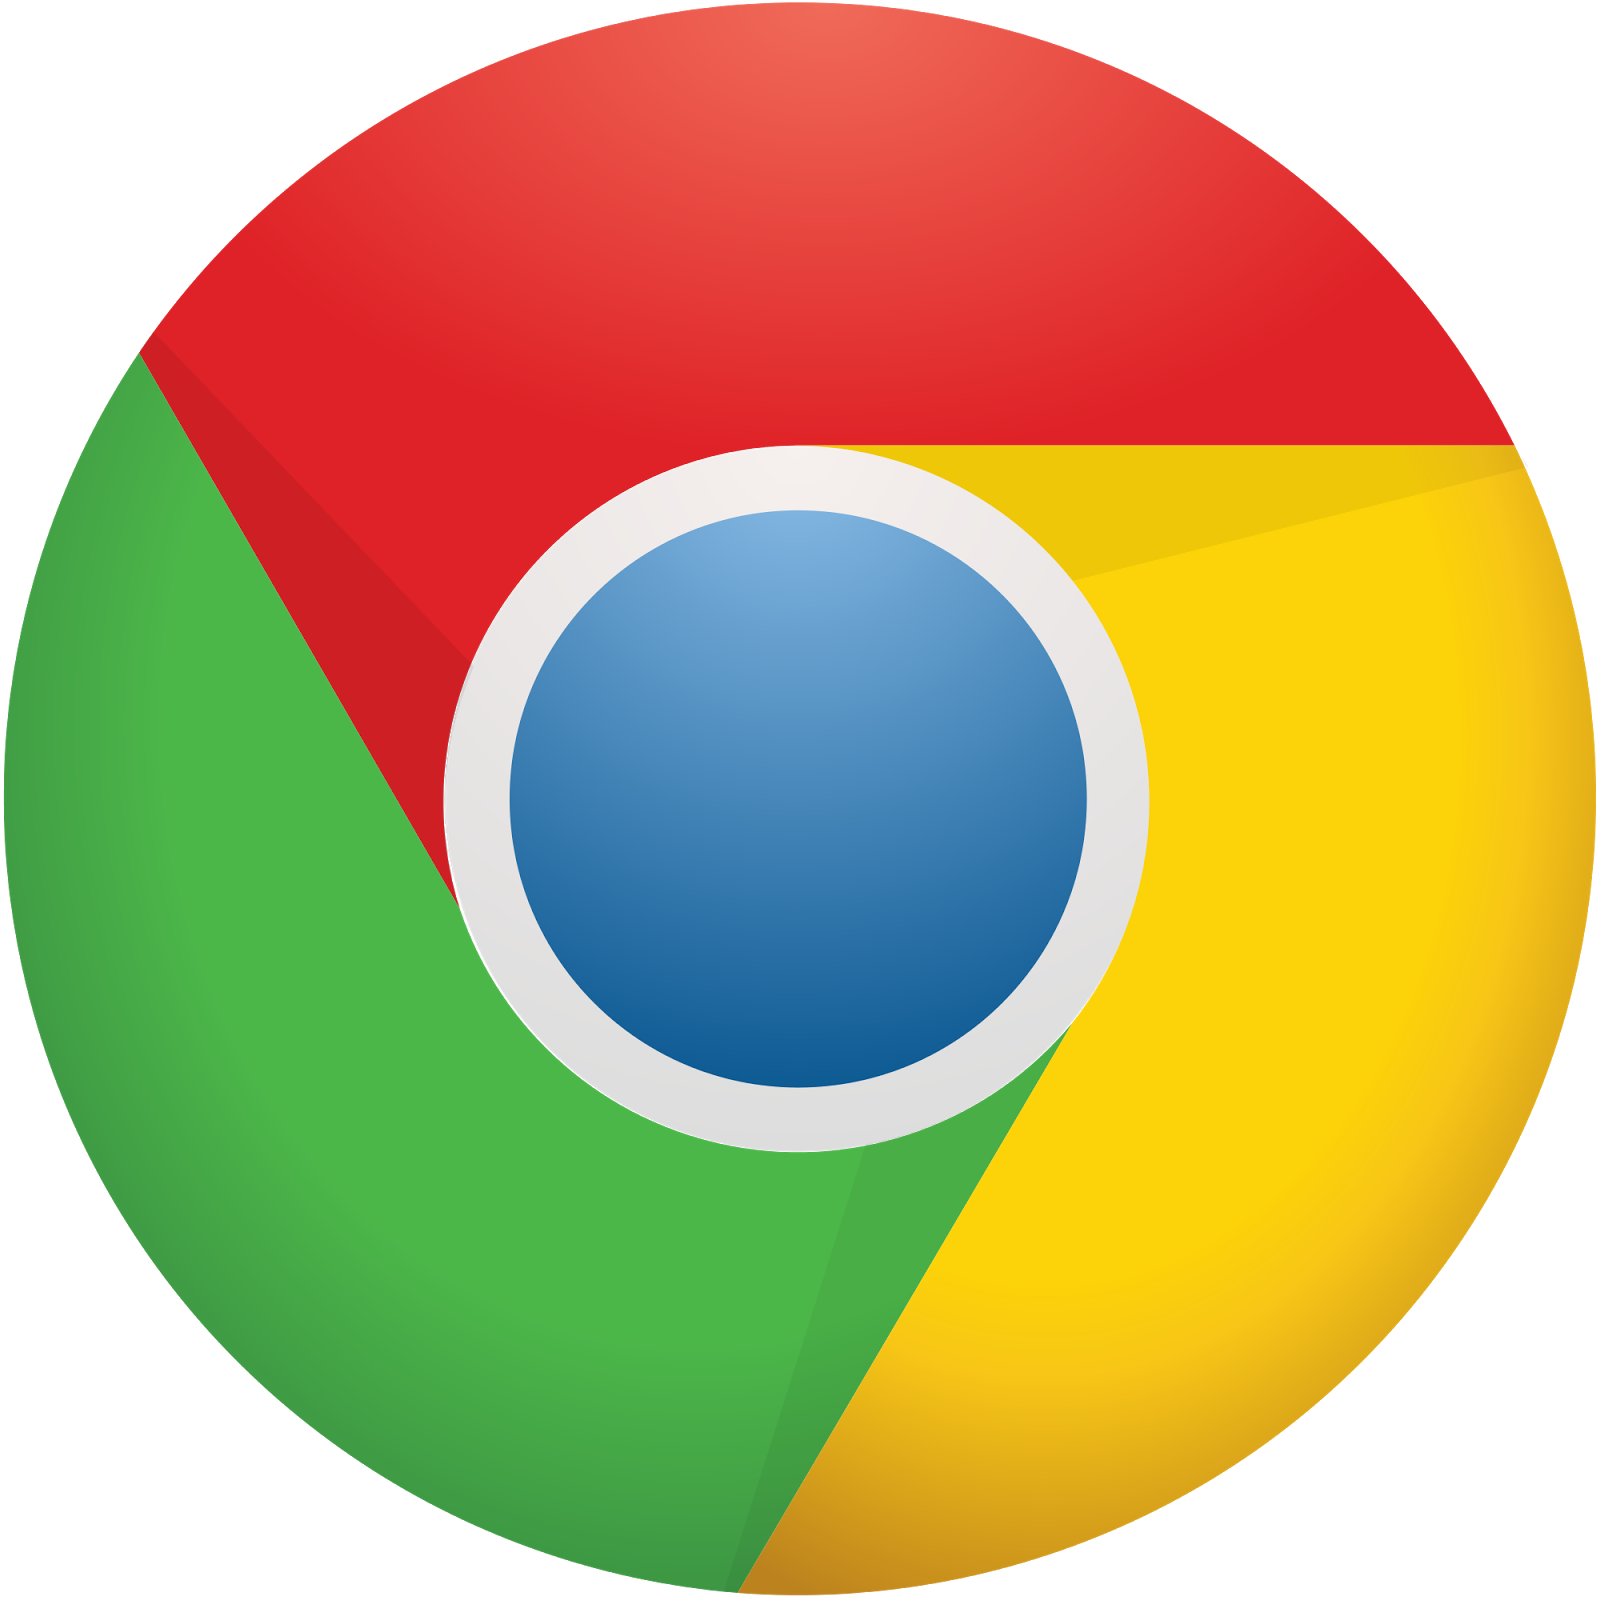 Get a Chrome update when available